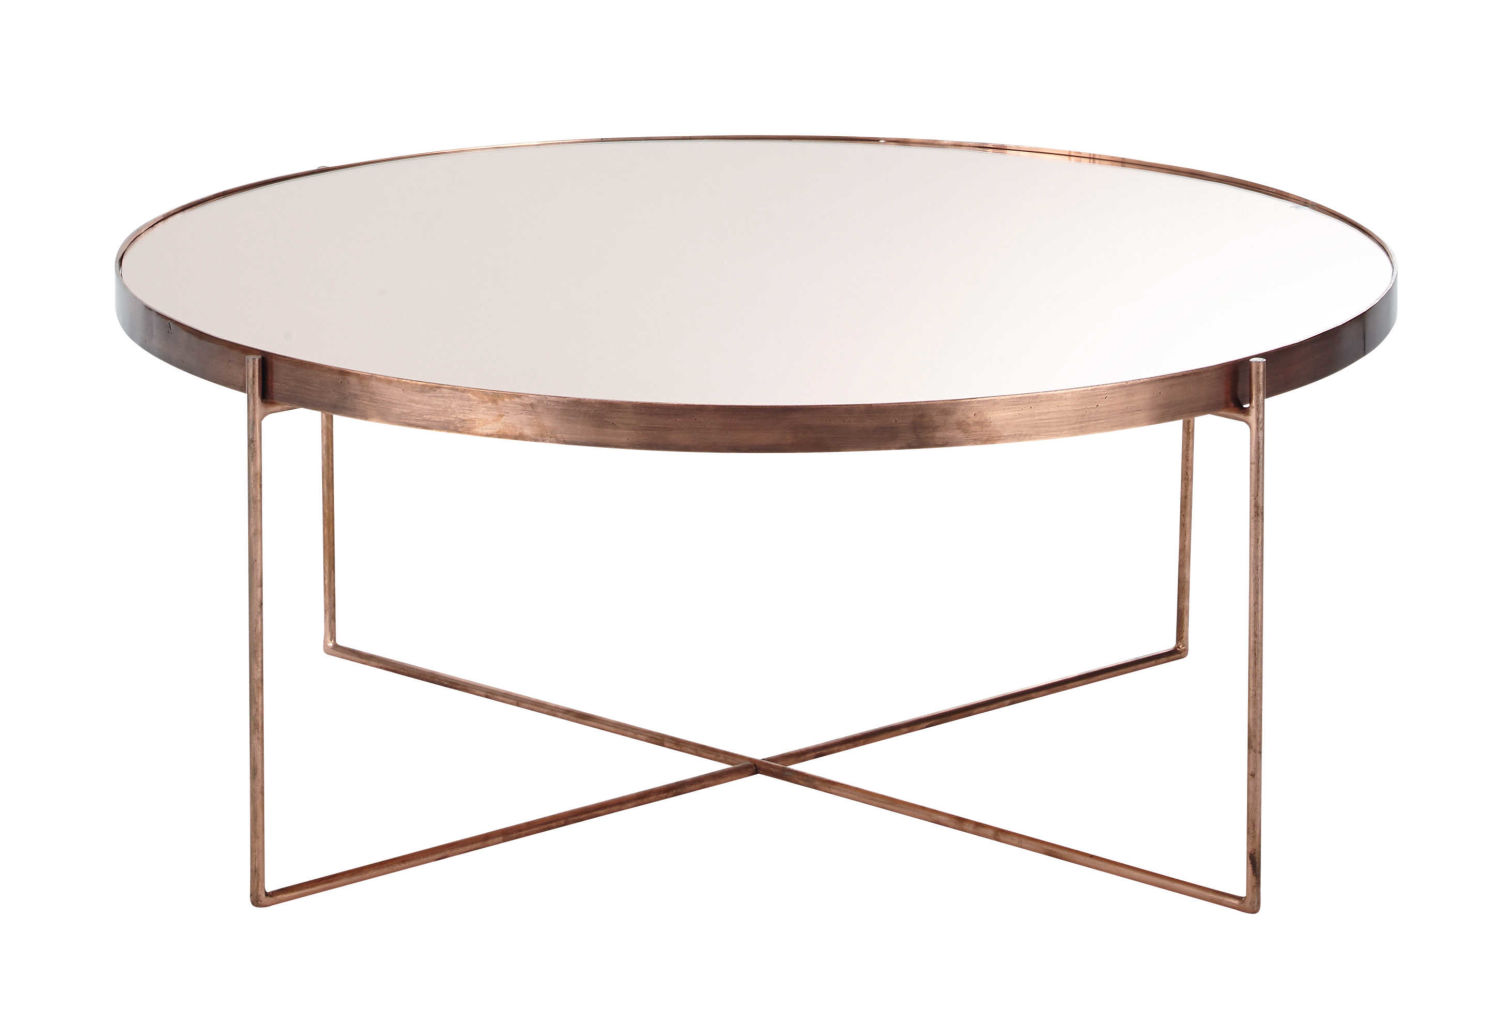 Maisons Du Monde Couchtisch Copper-plated Metal Mirror Round Coffee Table | Maisons Du